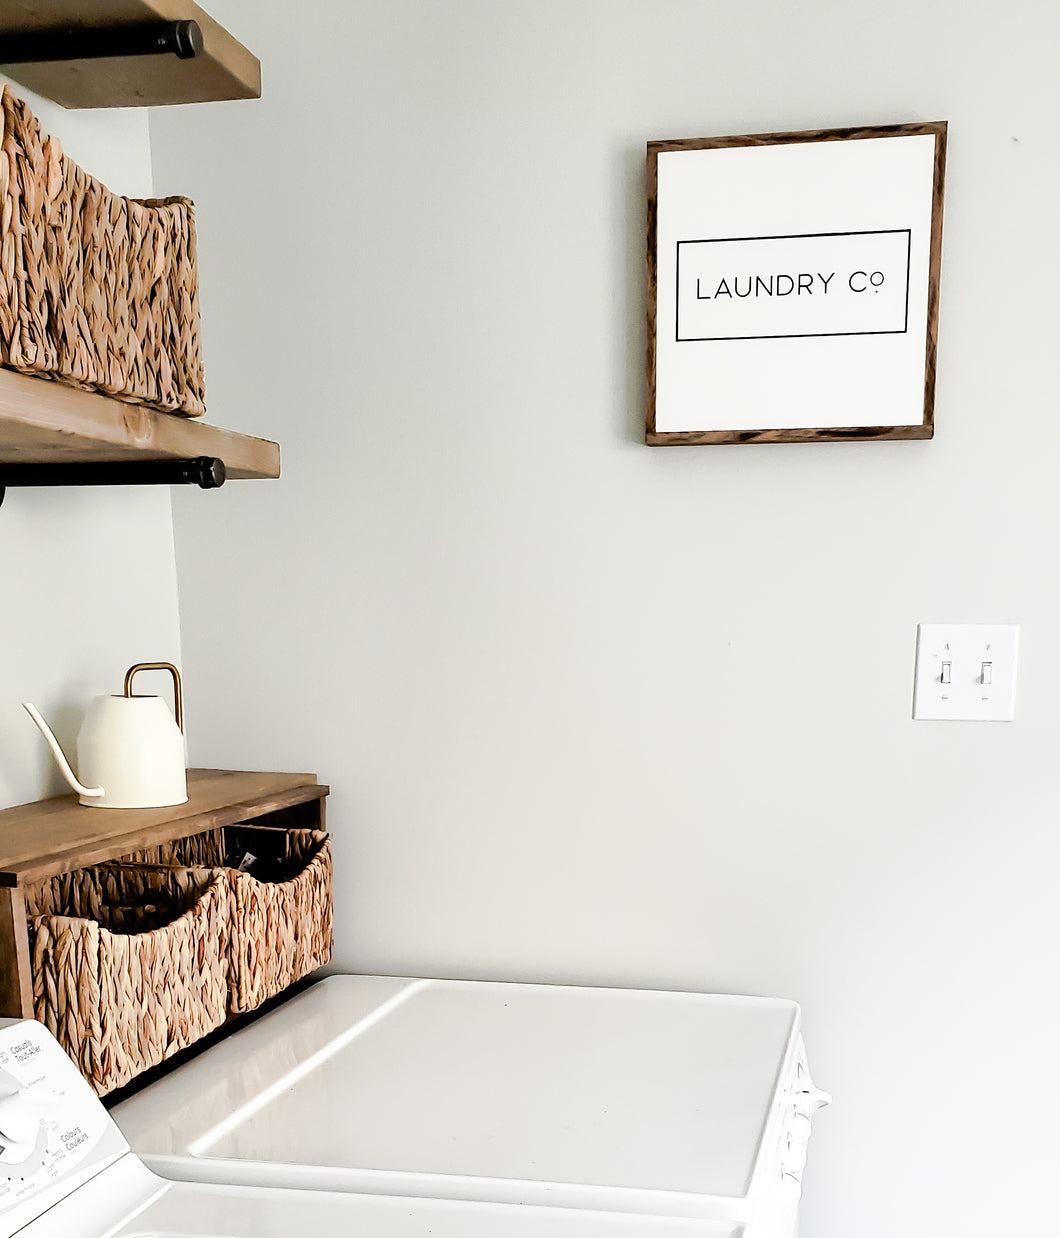 Laundry Co | Wood Sign |